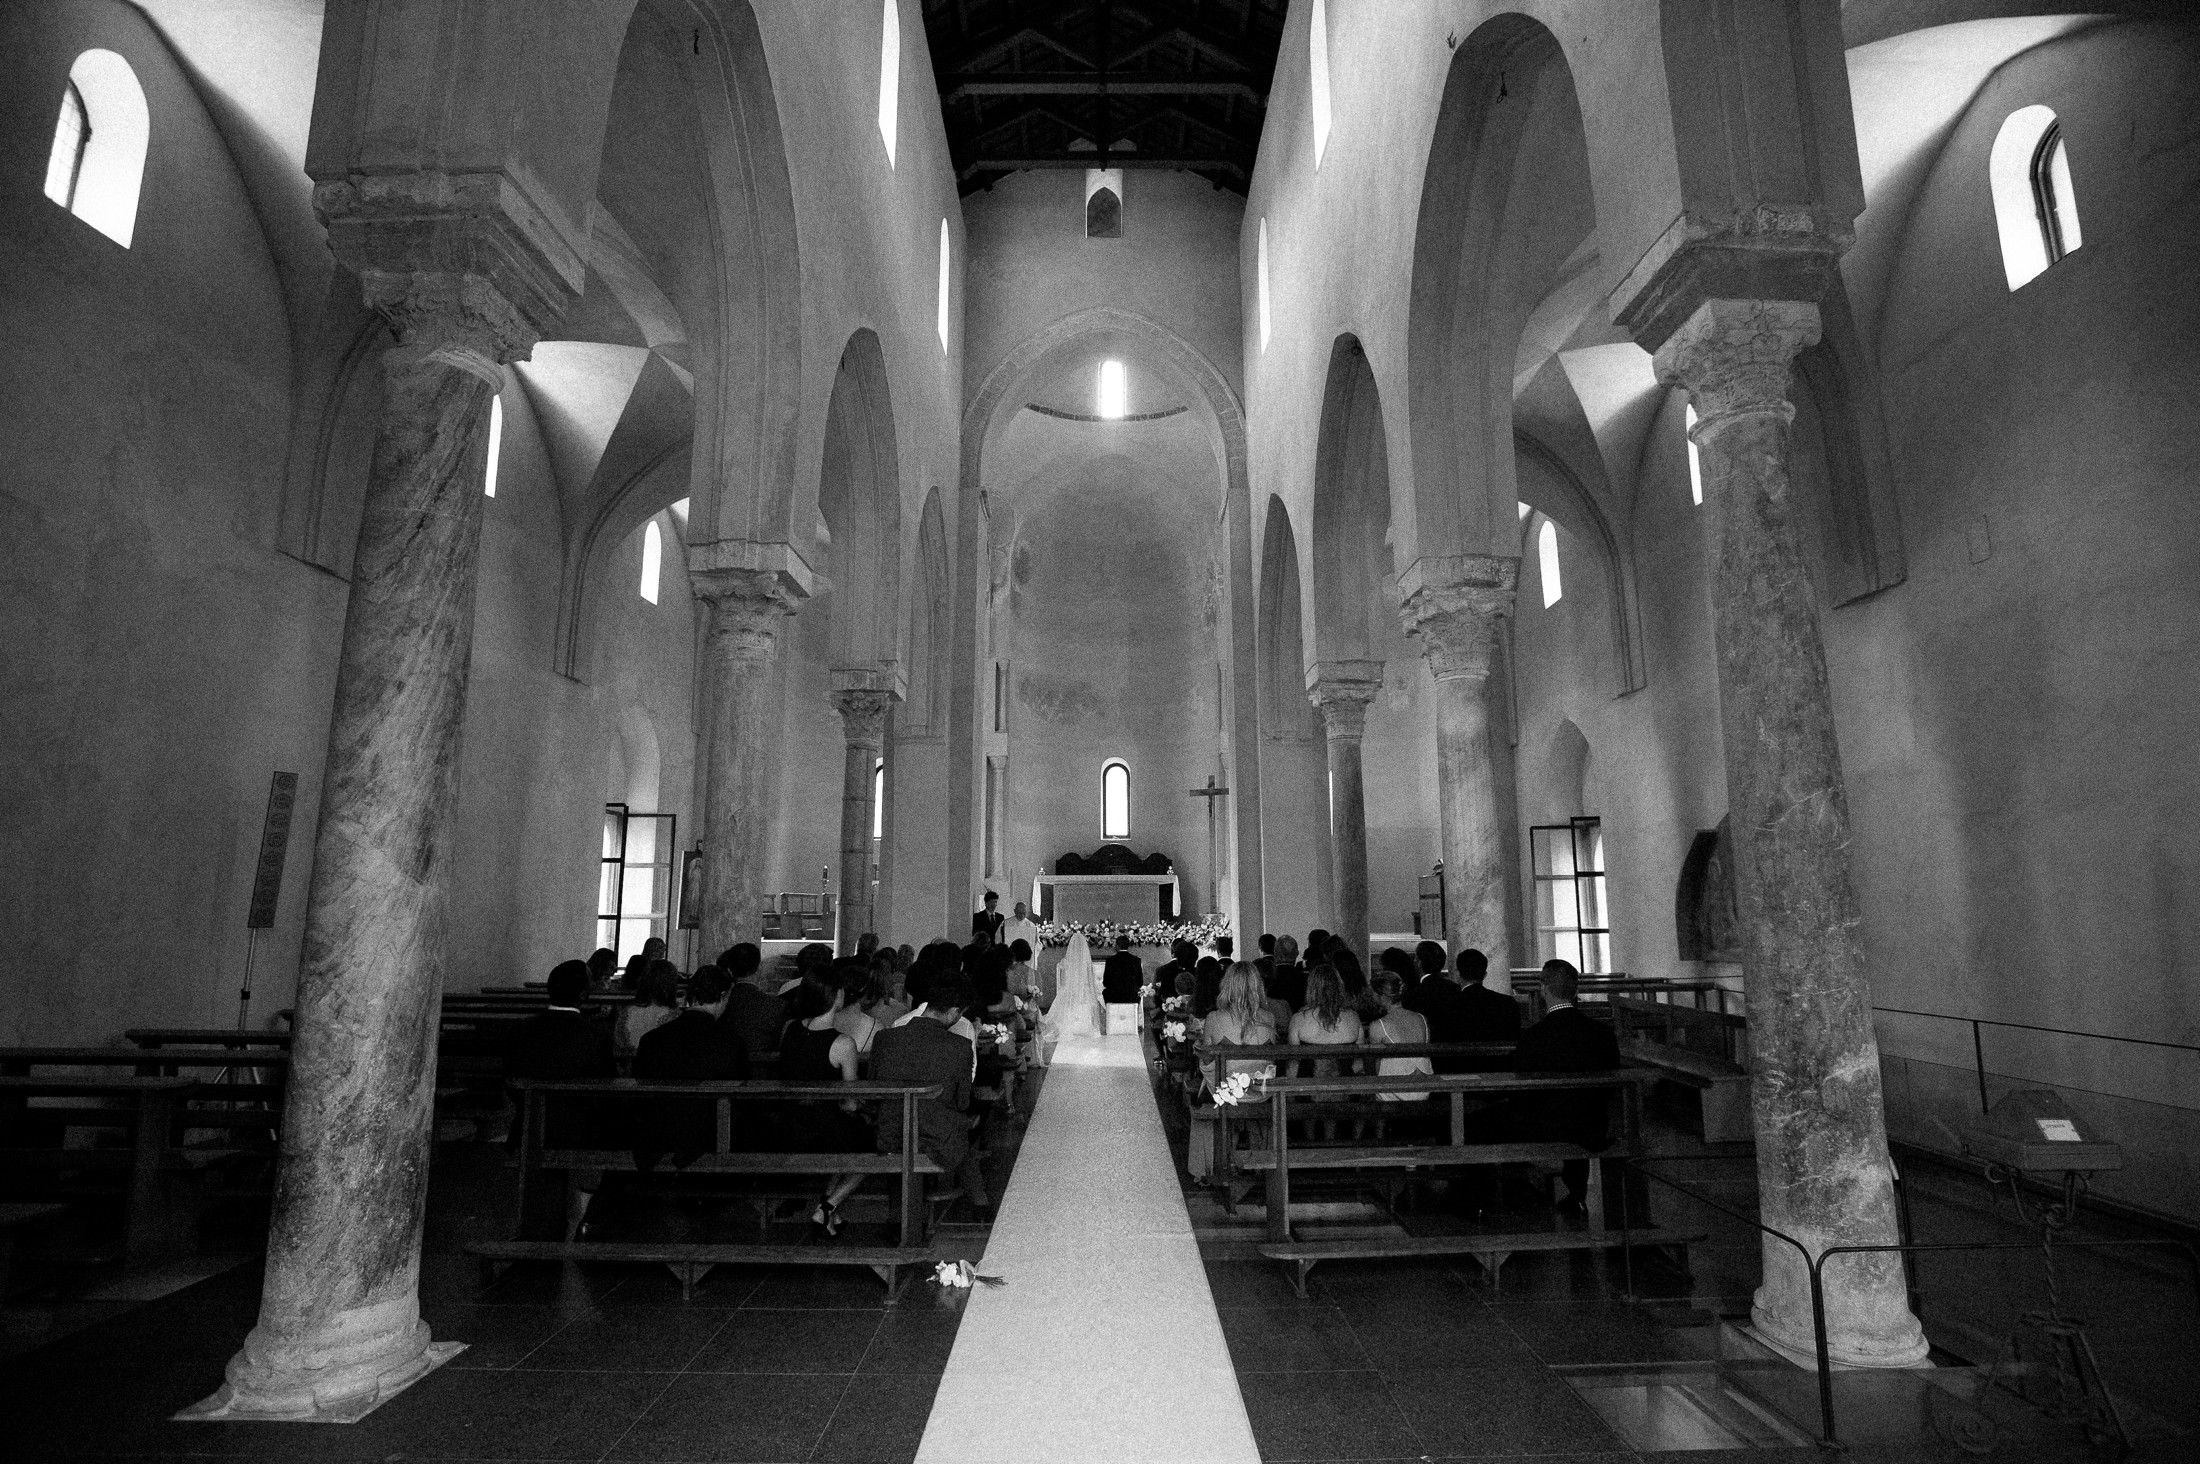 inside the church during the ceremony